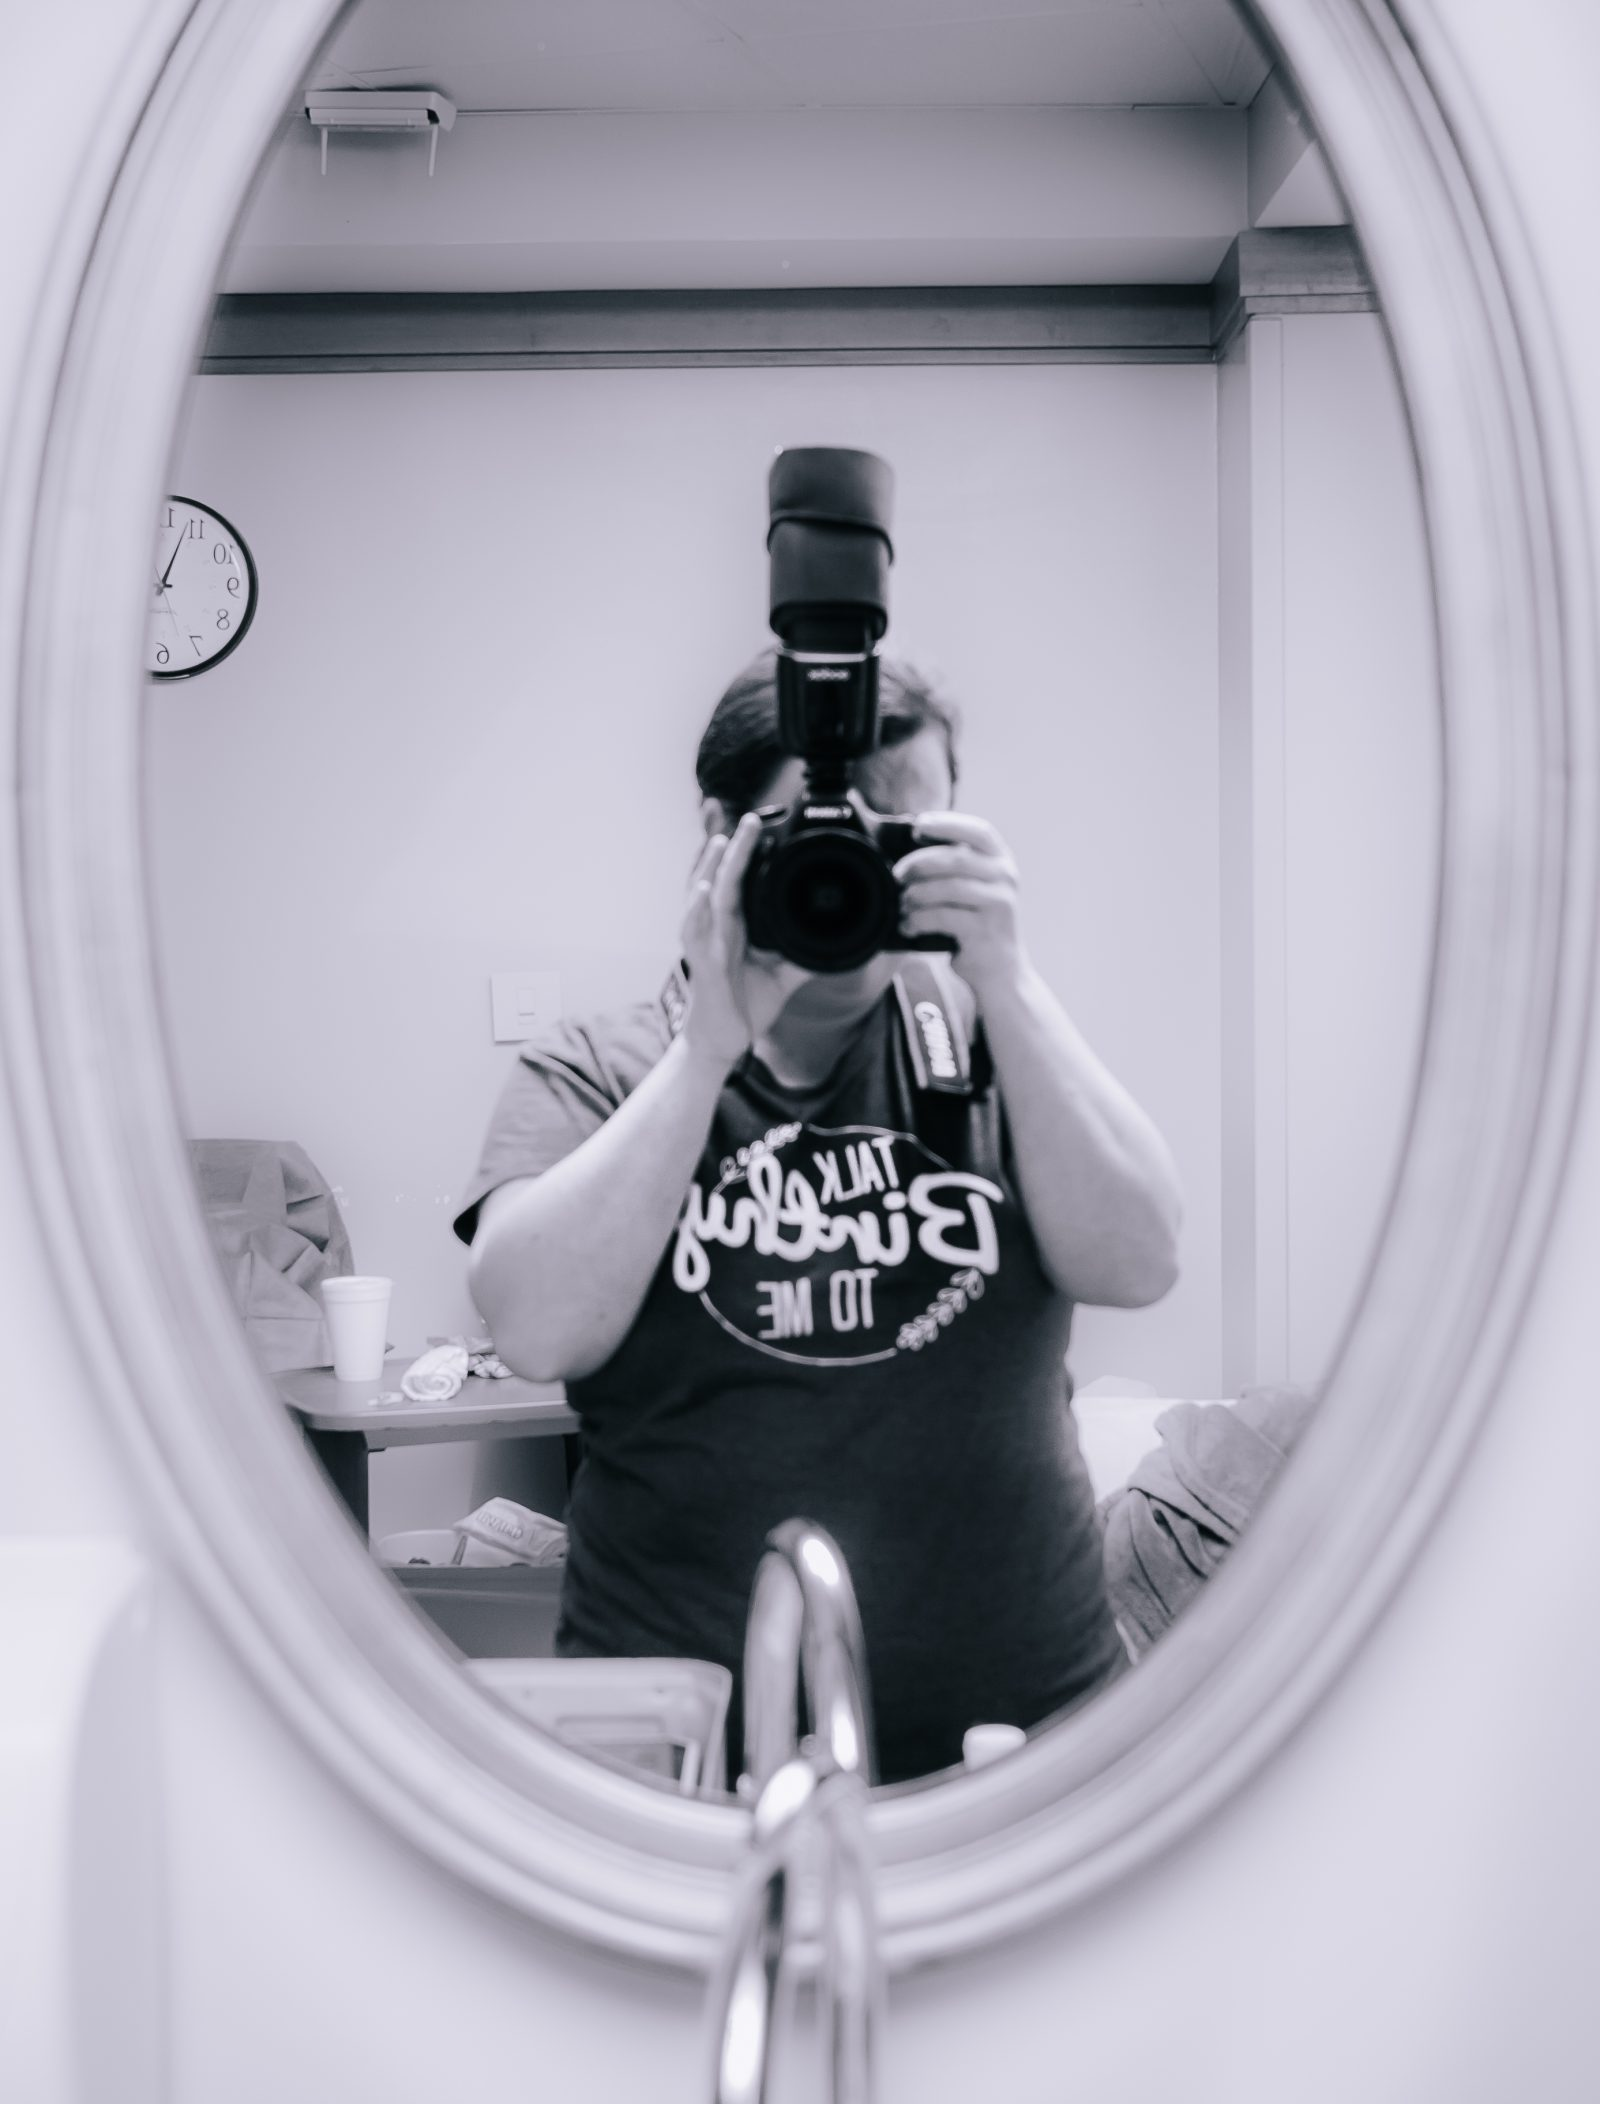 Selfie of a birth photographer in a hospital room mirror in celebration of Birth Photography Day